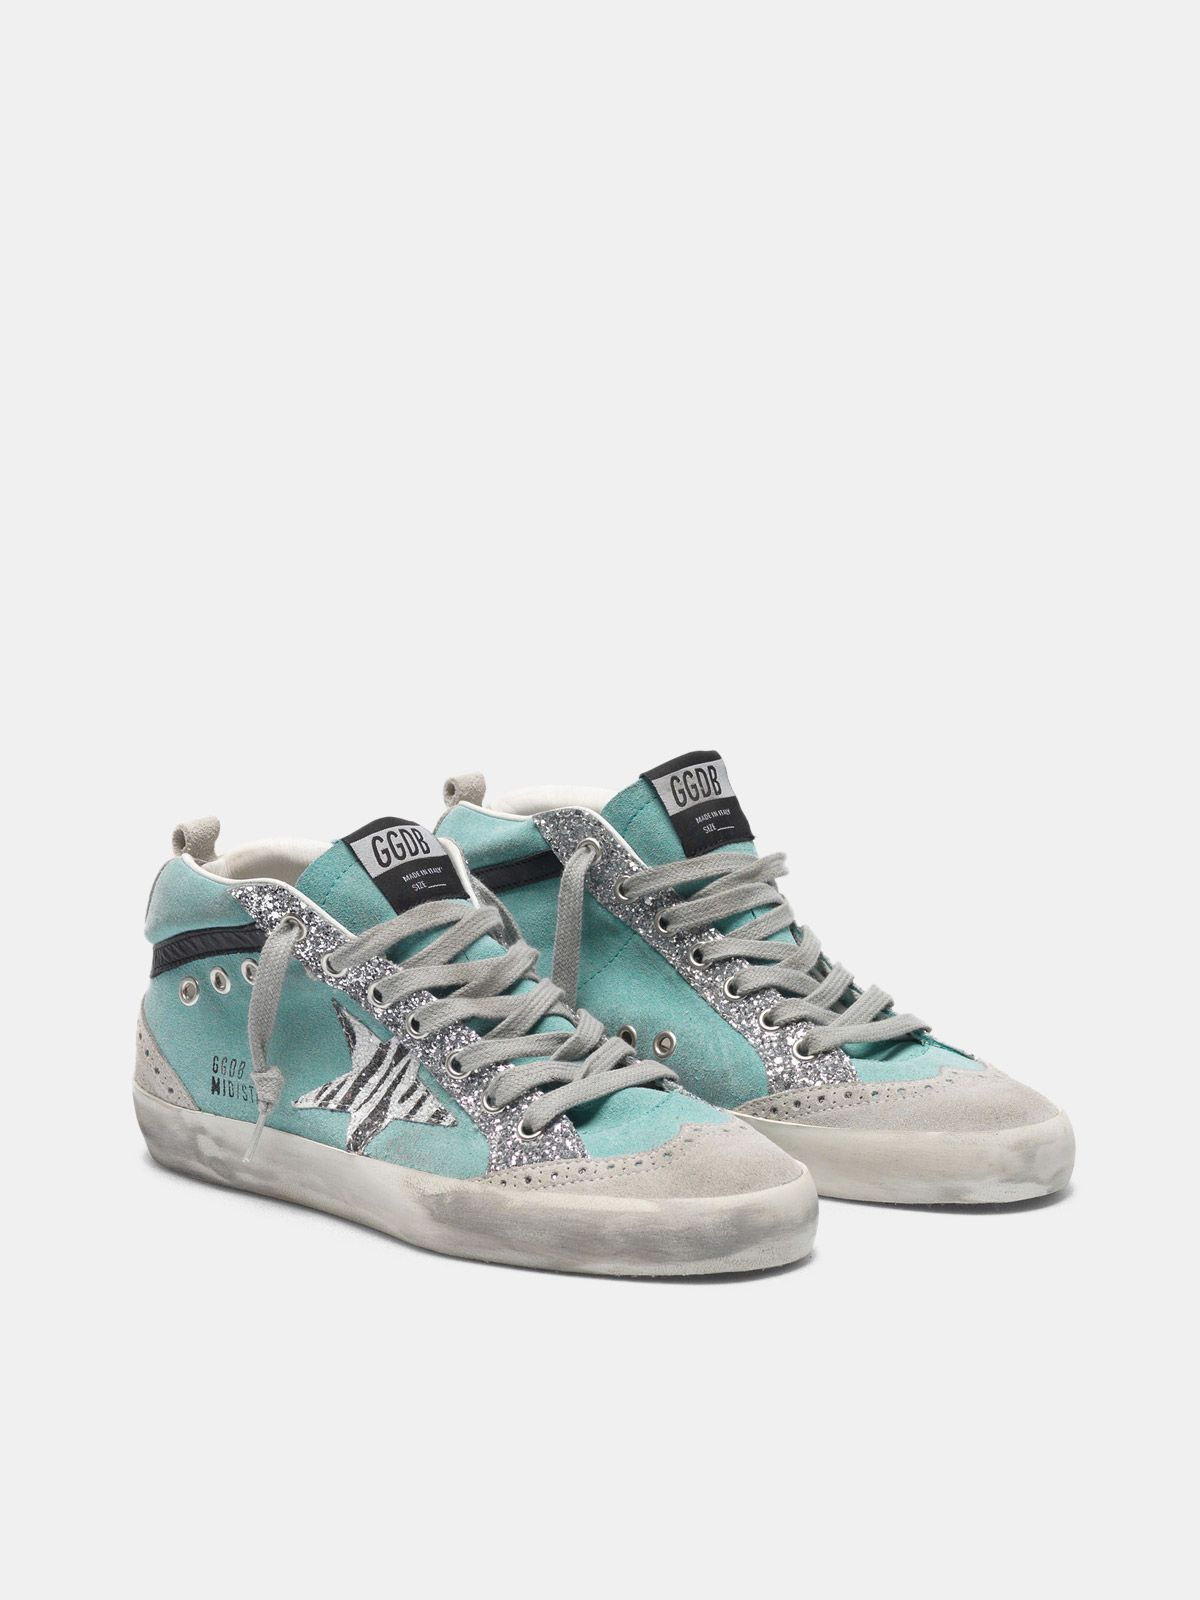 Golden Goose - Suede Mid-Star sneakers with glitter and zebra-print star in